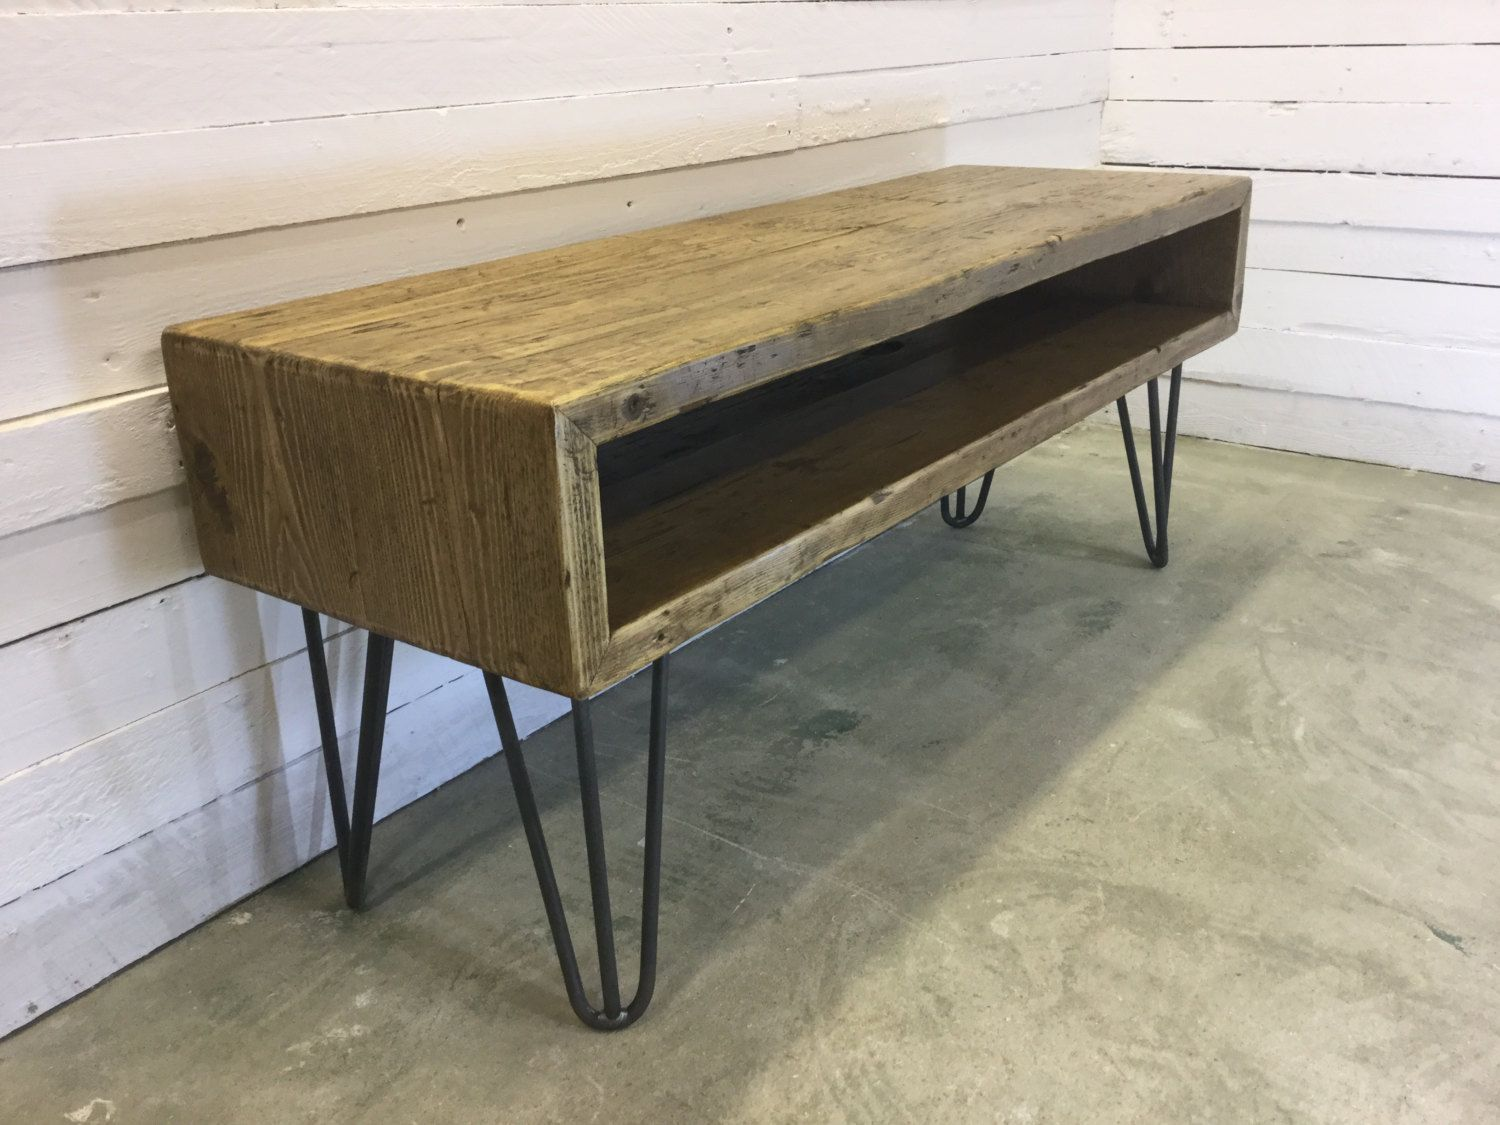 created by oxrusticfurniture 39 rustic industrial hairpin leg scaffold board tv stand unit. Black Bedroom Furniture Sets. Home Design Ideas